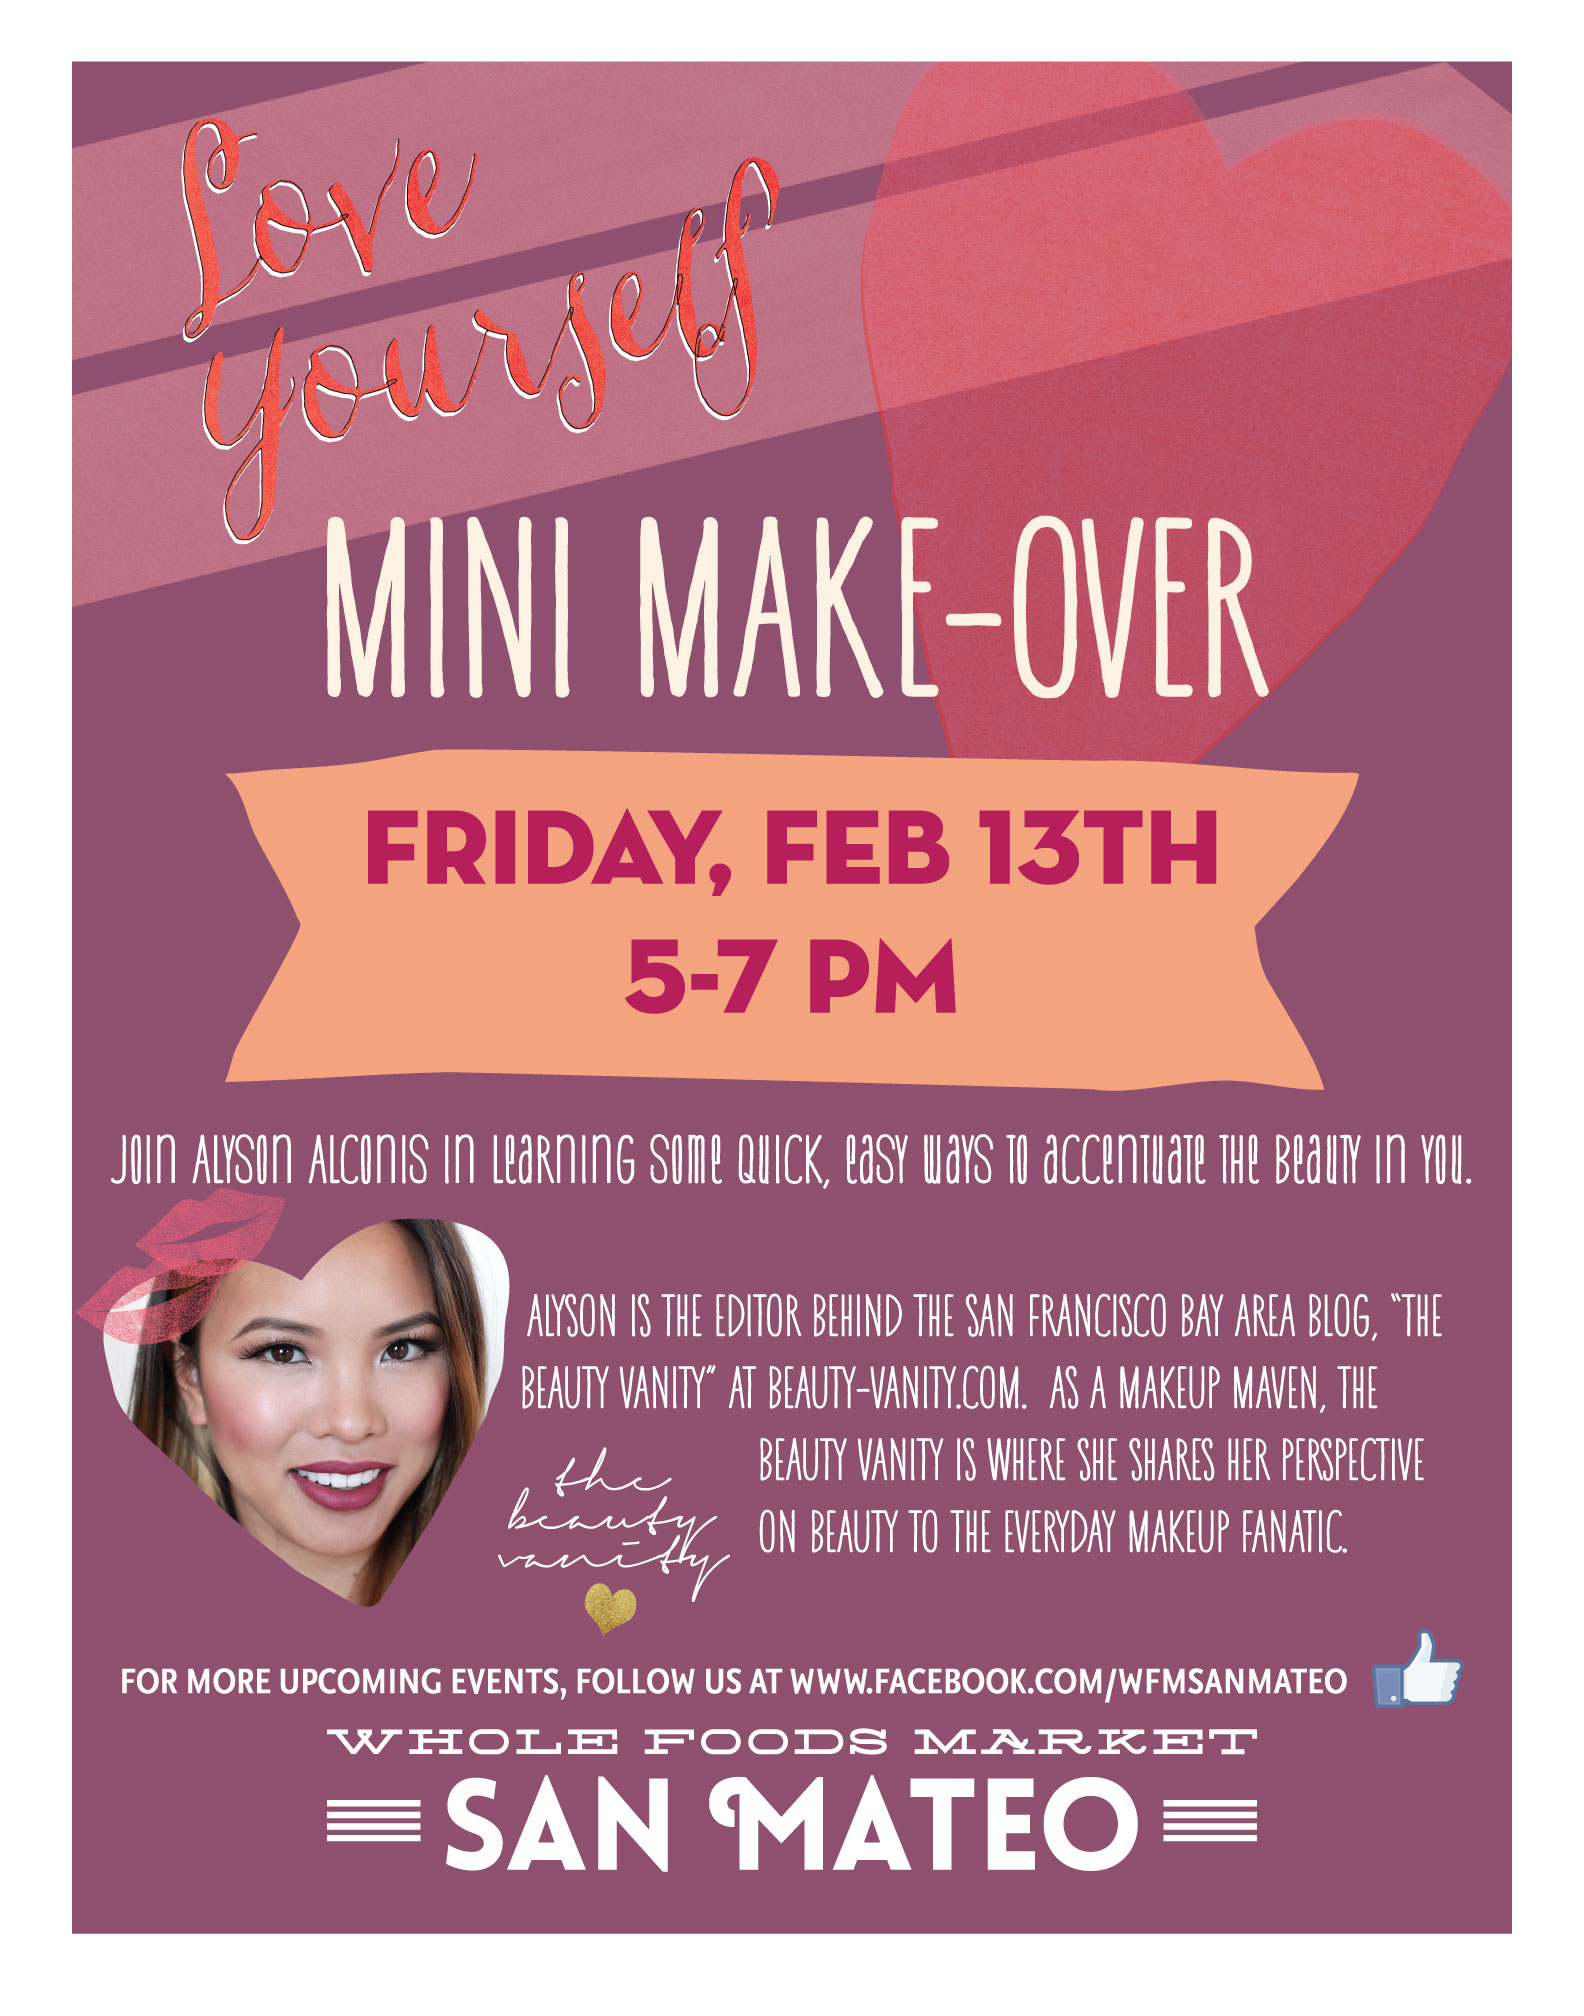 Whole Foods San Mateo Beauty Event with The Beauty Vanity